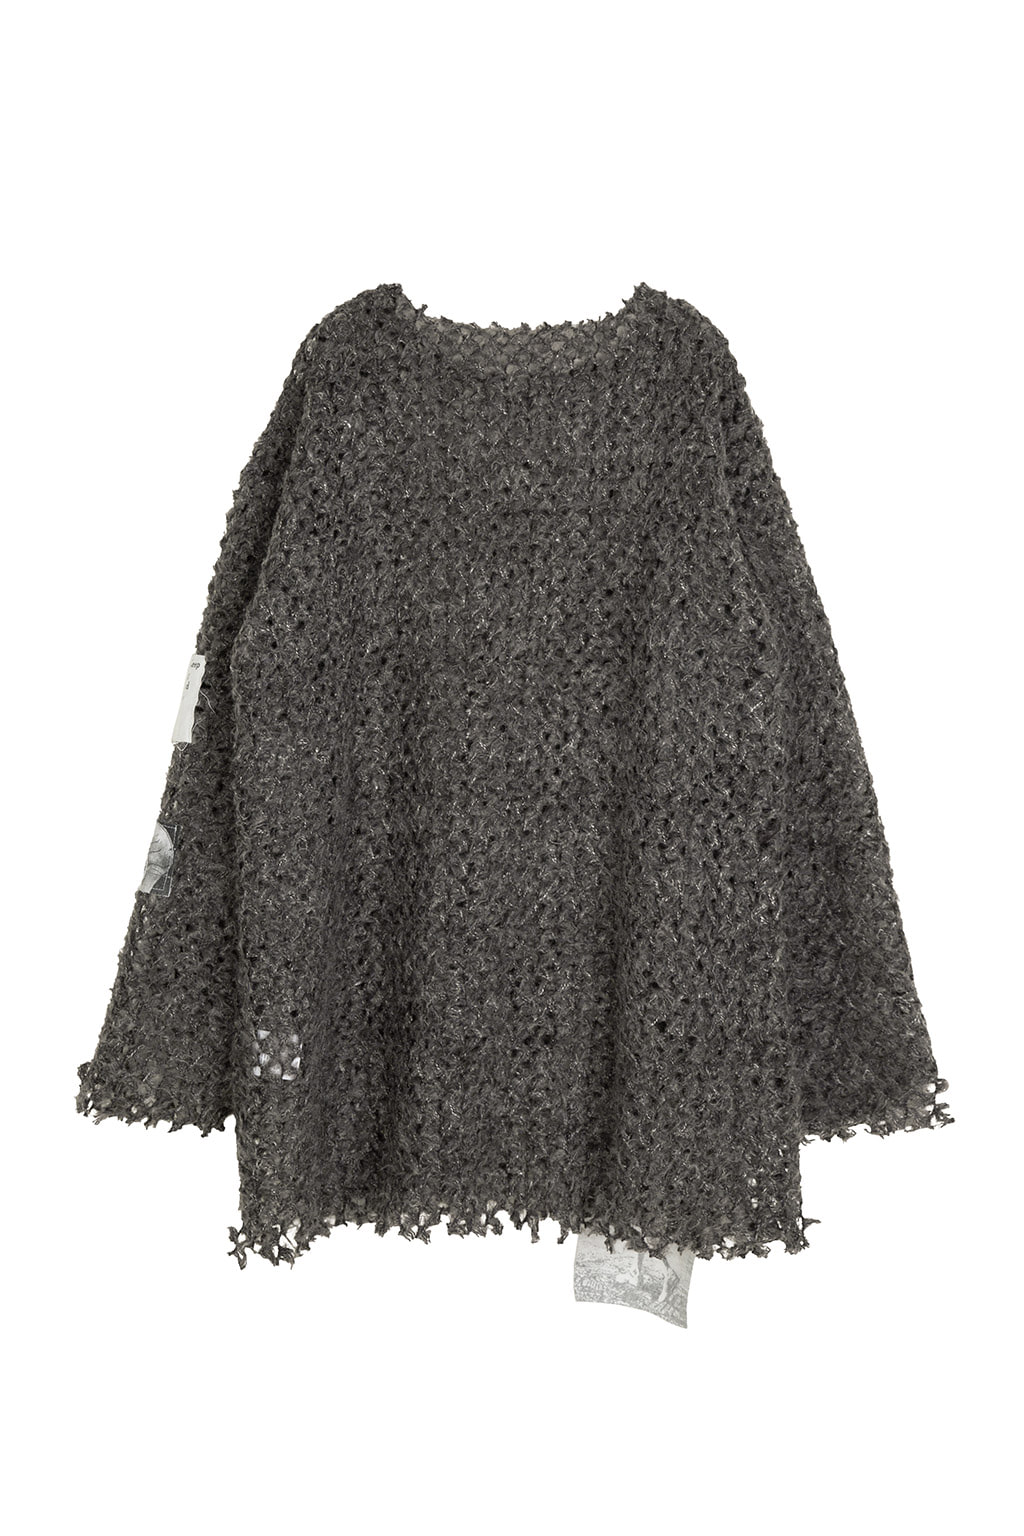 patch net knit - charcoal